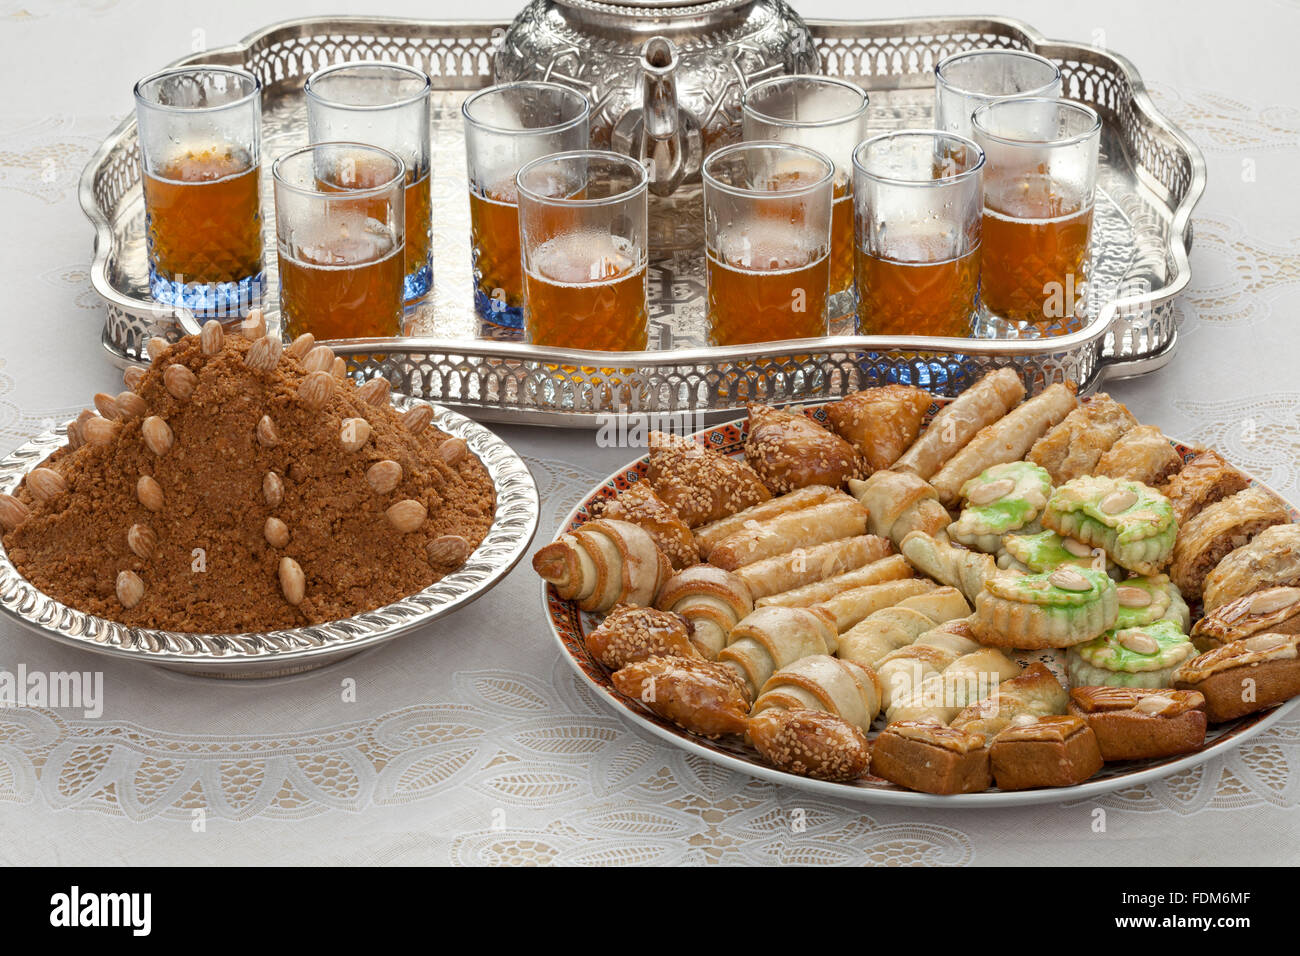 Great Morocco Eid Al-Fitr 2018 - traditional-moroccan-teacookies-and-almond-sellou-at-id-al-fitr-the-FDM6MF  Pic_375100 .jpg